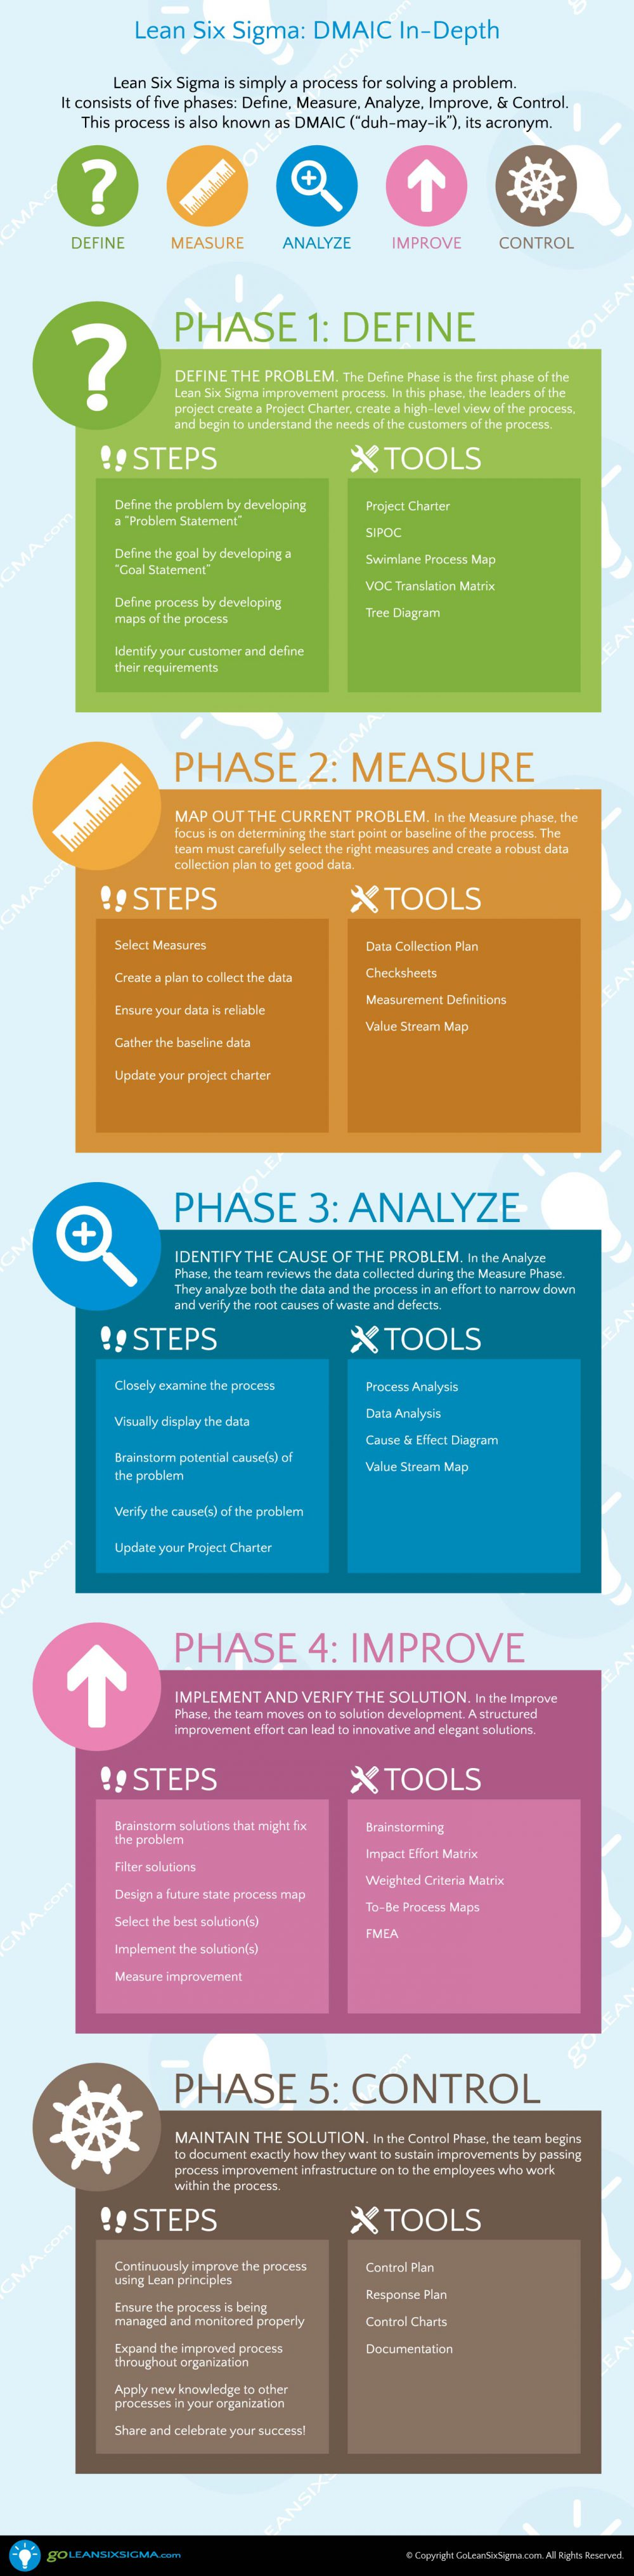 GLSS_Infographic_DMAIC_In-Depth